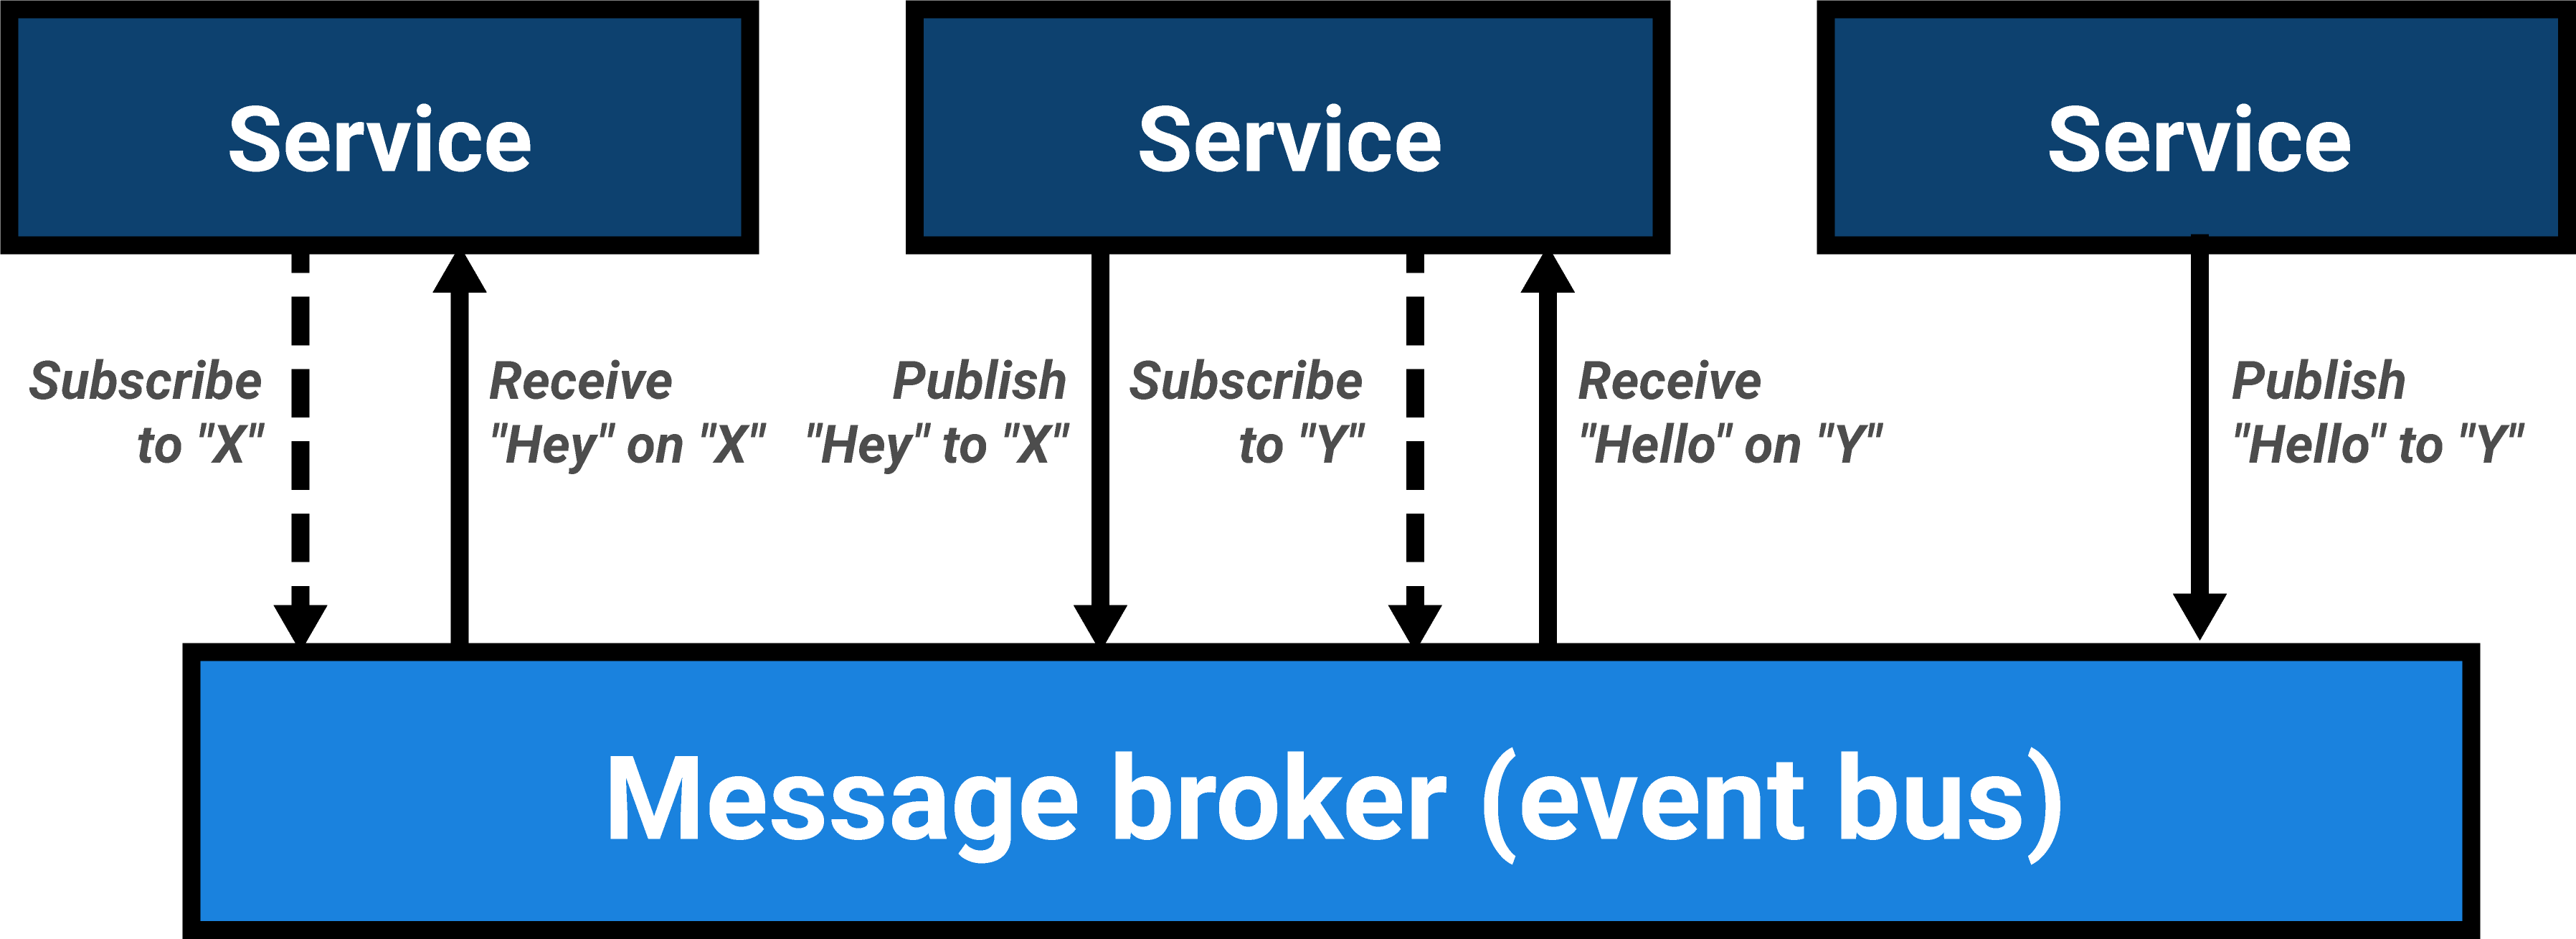 Services exchanging messages via a message broker or event bus by subscribing to a channel and receiving subsequent messages on that channel.